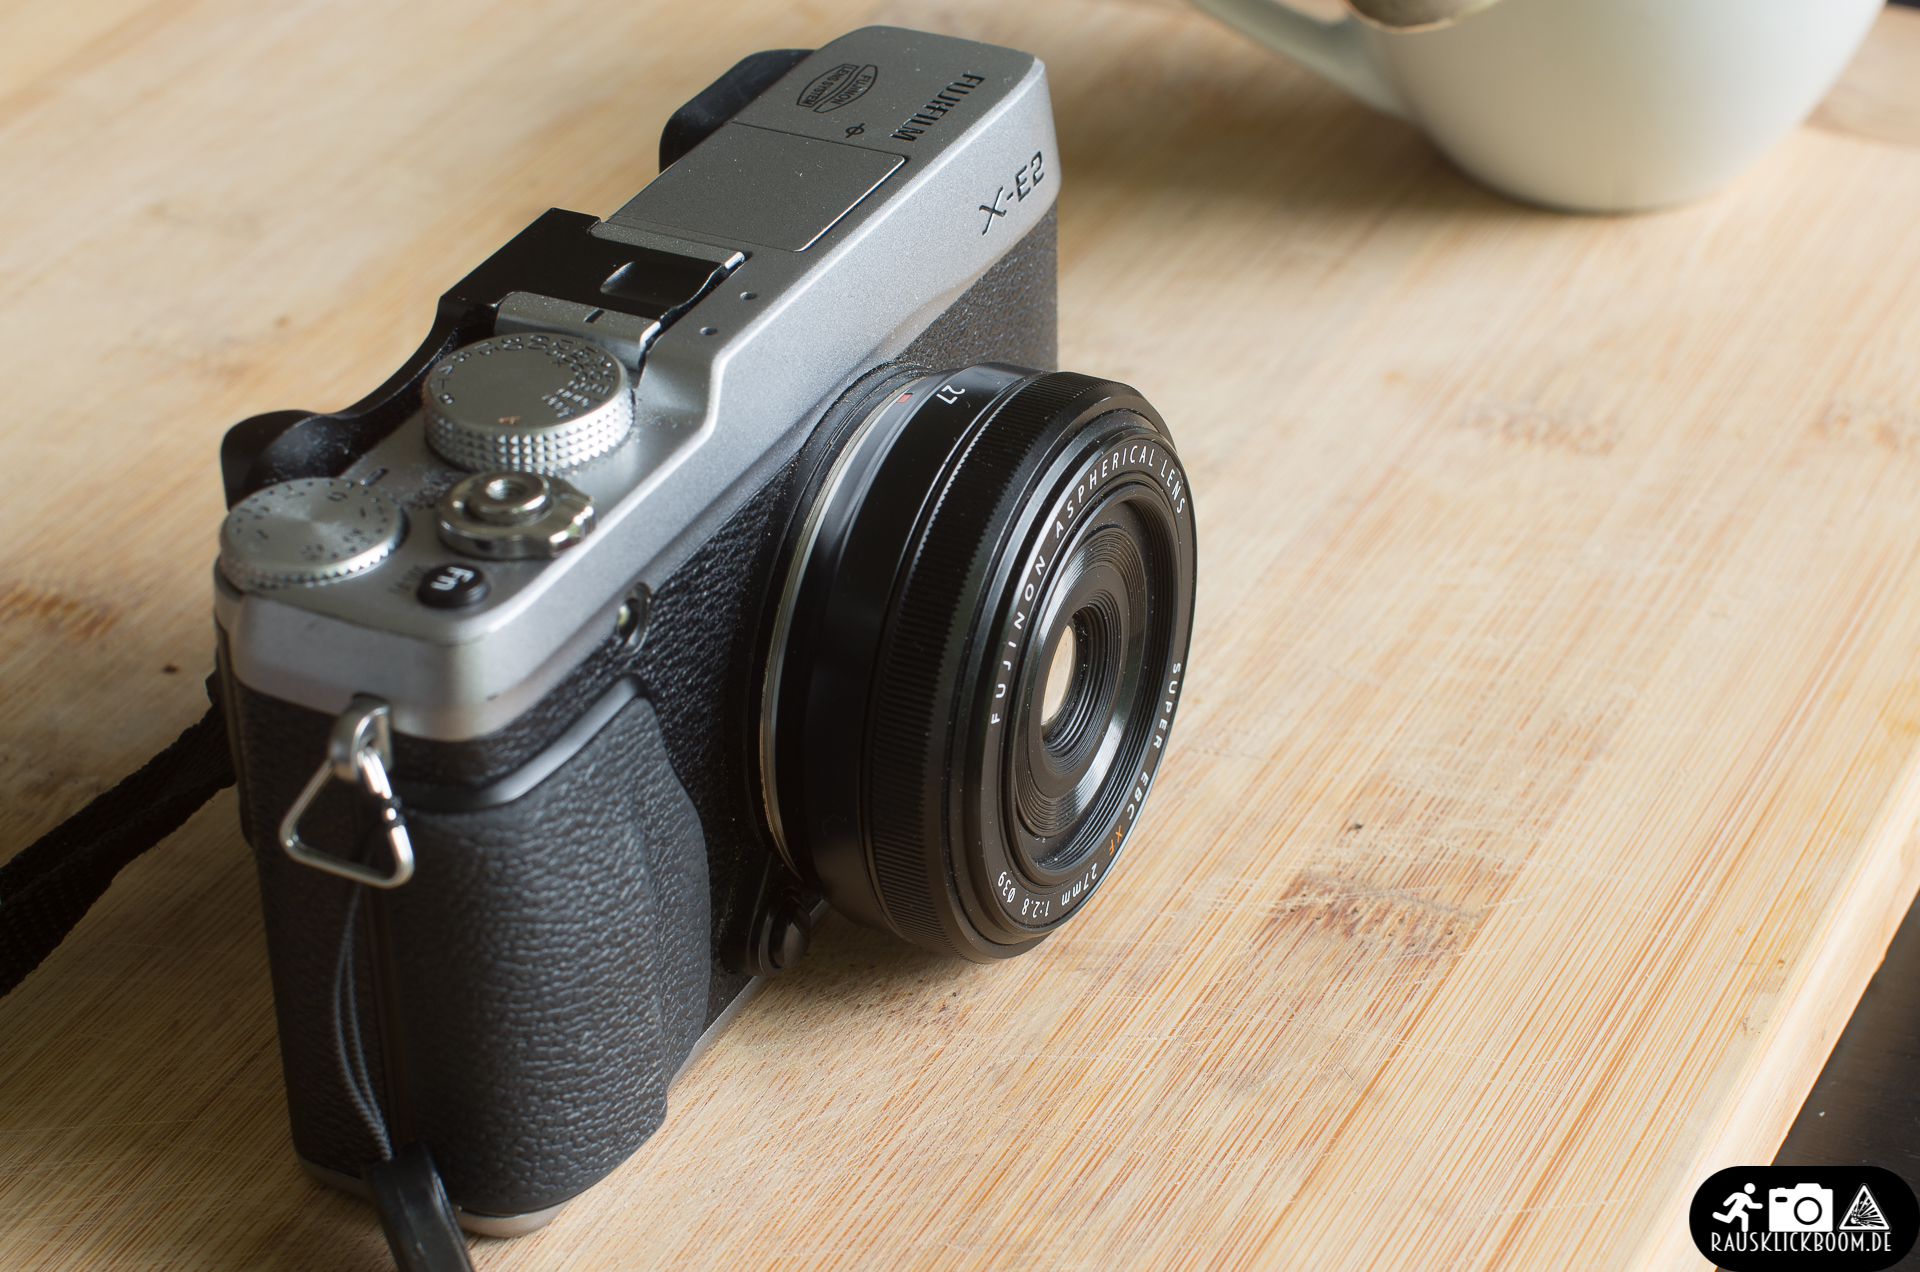 Fujinon XF27mm F2.8 an der Fujifilm X-E2 - Test, Review, Hands-On